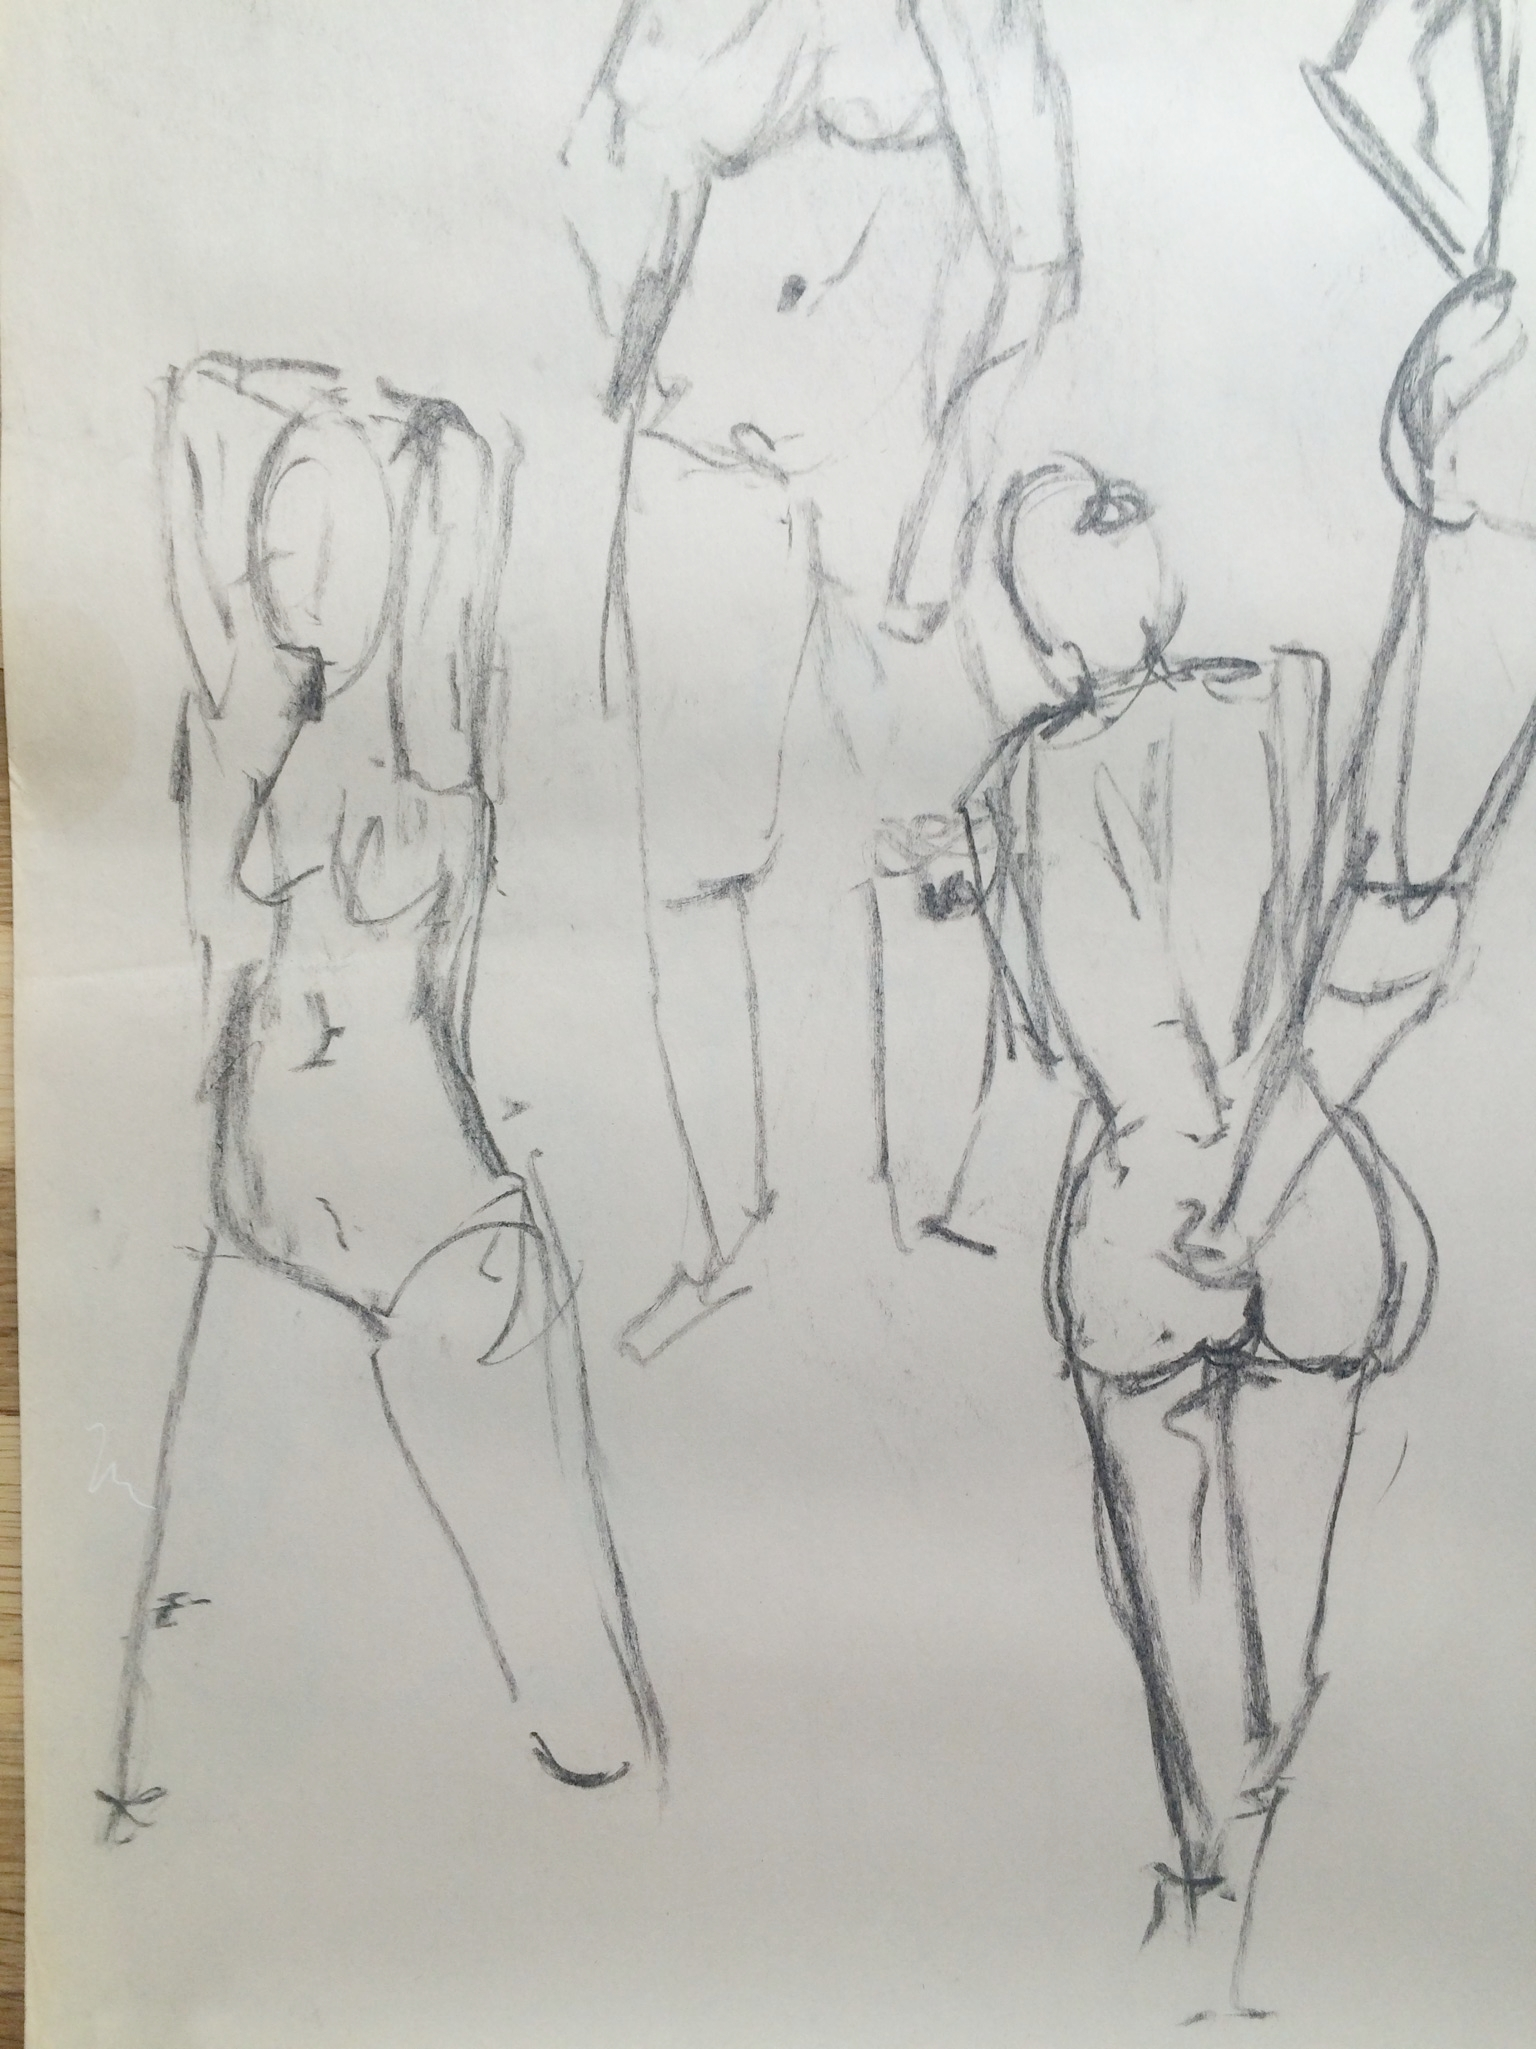 60 second sketches